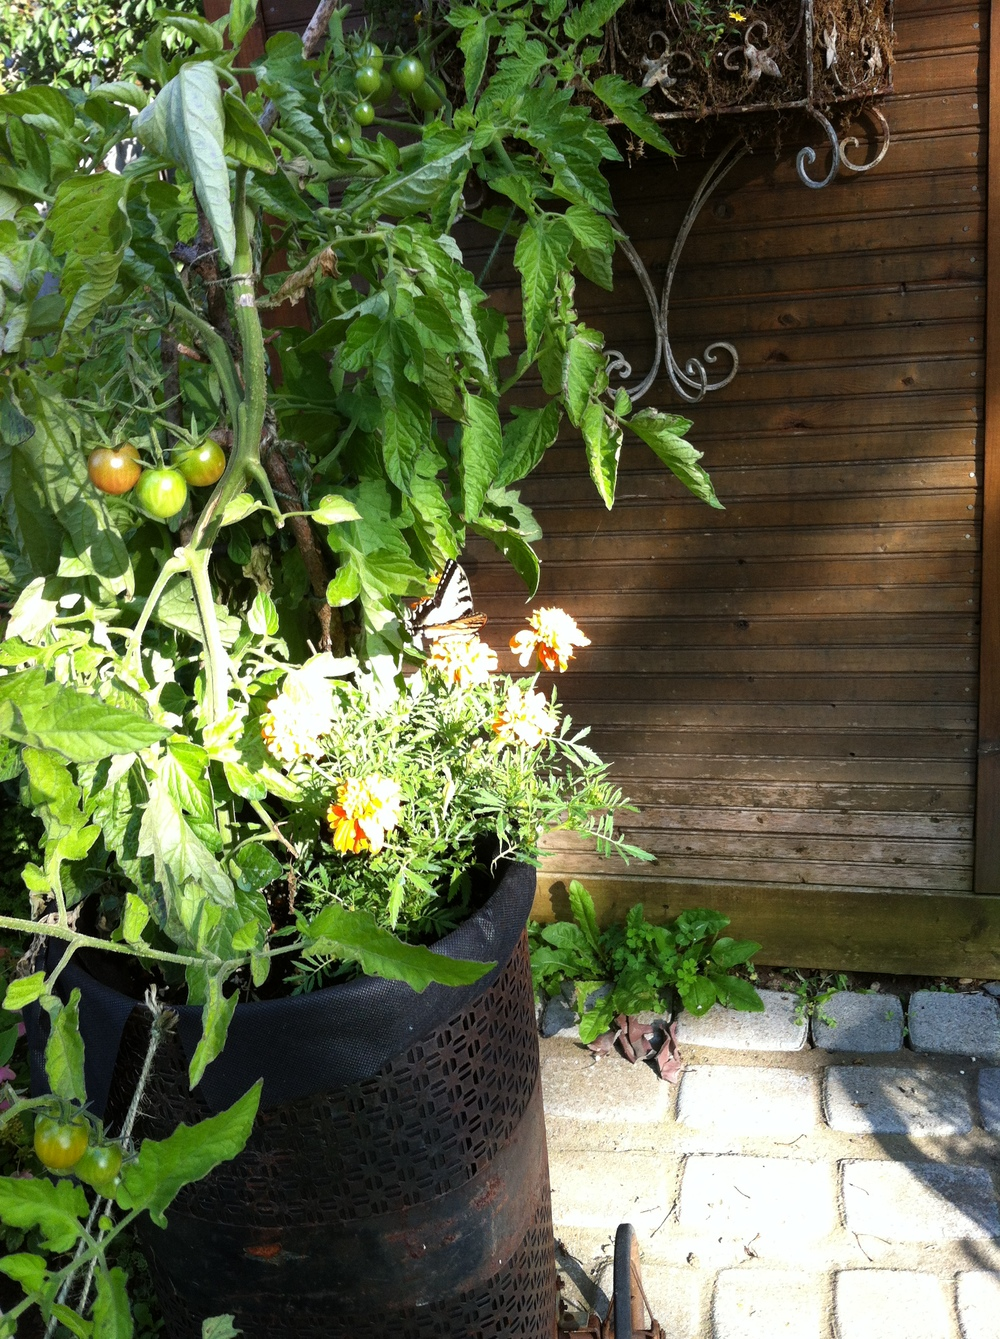 You can grow veggies in a small space like a patio or balcony. And you have a lot of choice in what kind of container to use: here we have tomatoes growing in an antique wheeled shopping cart.